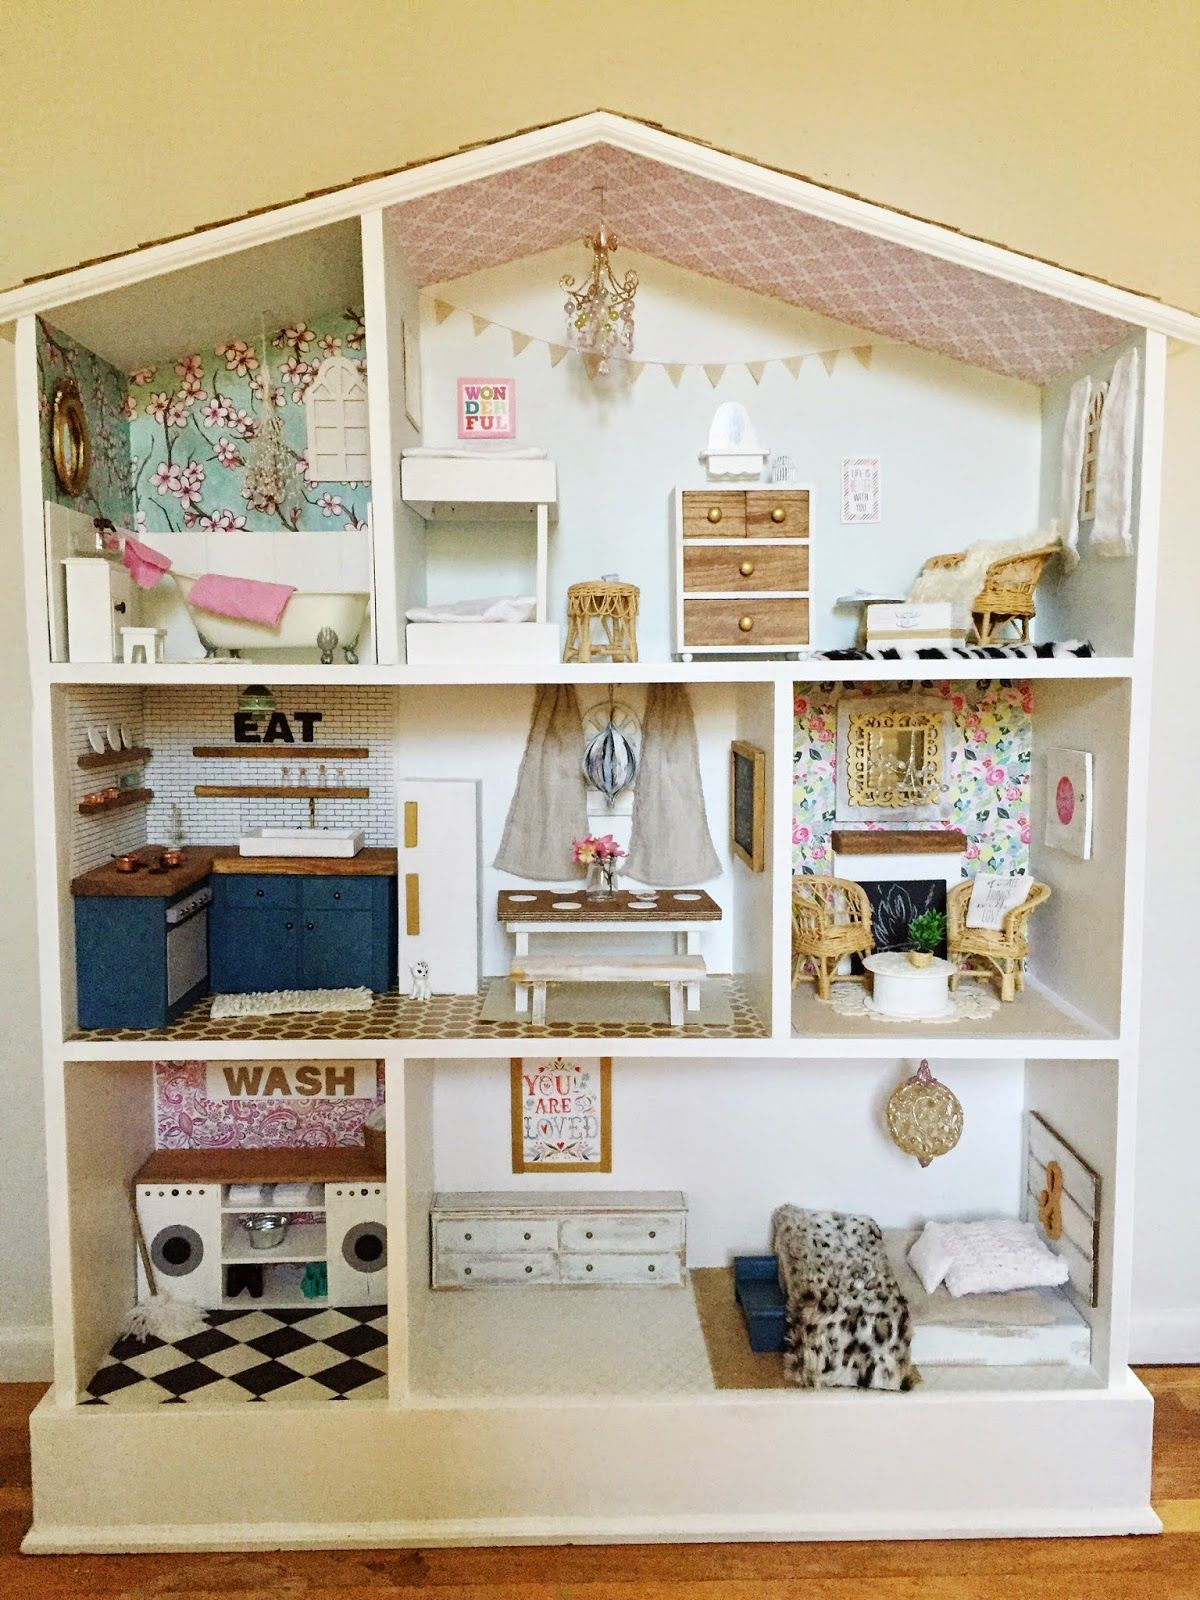 Make Your Own Barbie Furniture Property Cool Diy Barbie House  Barbie House Barbie And Do It Yourself Decorating Inspiration